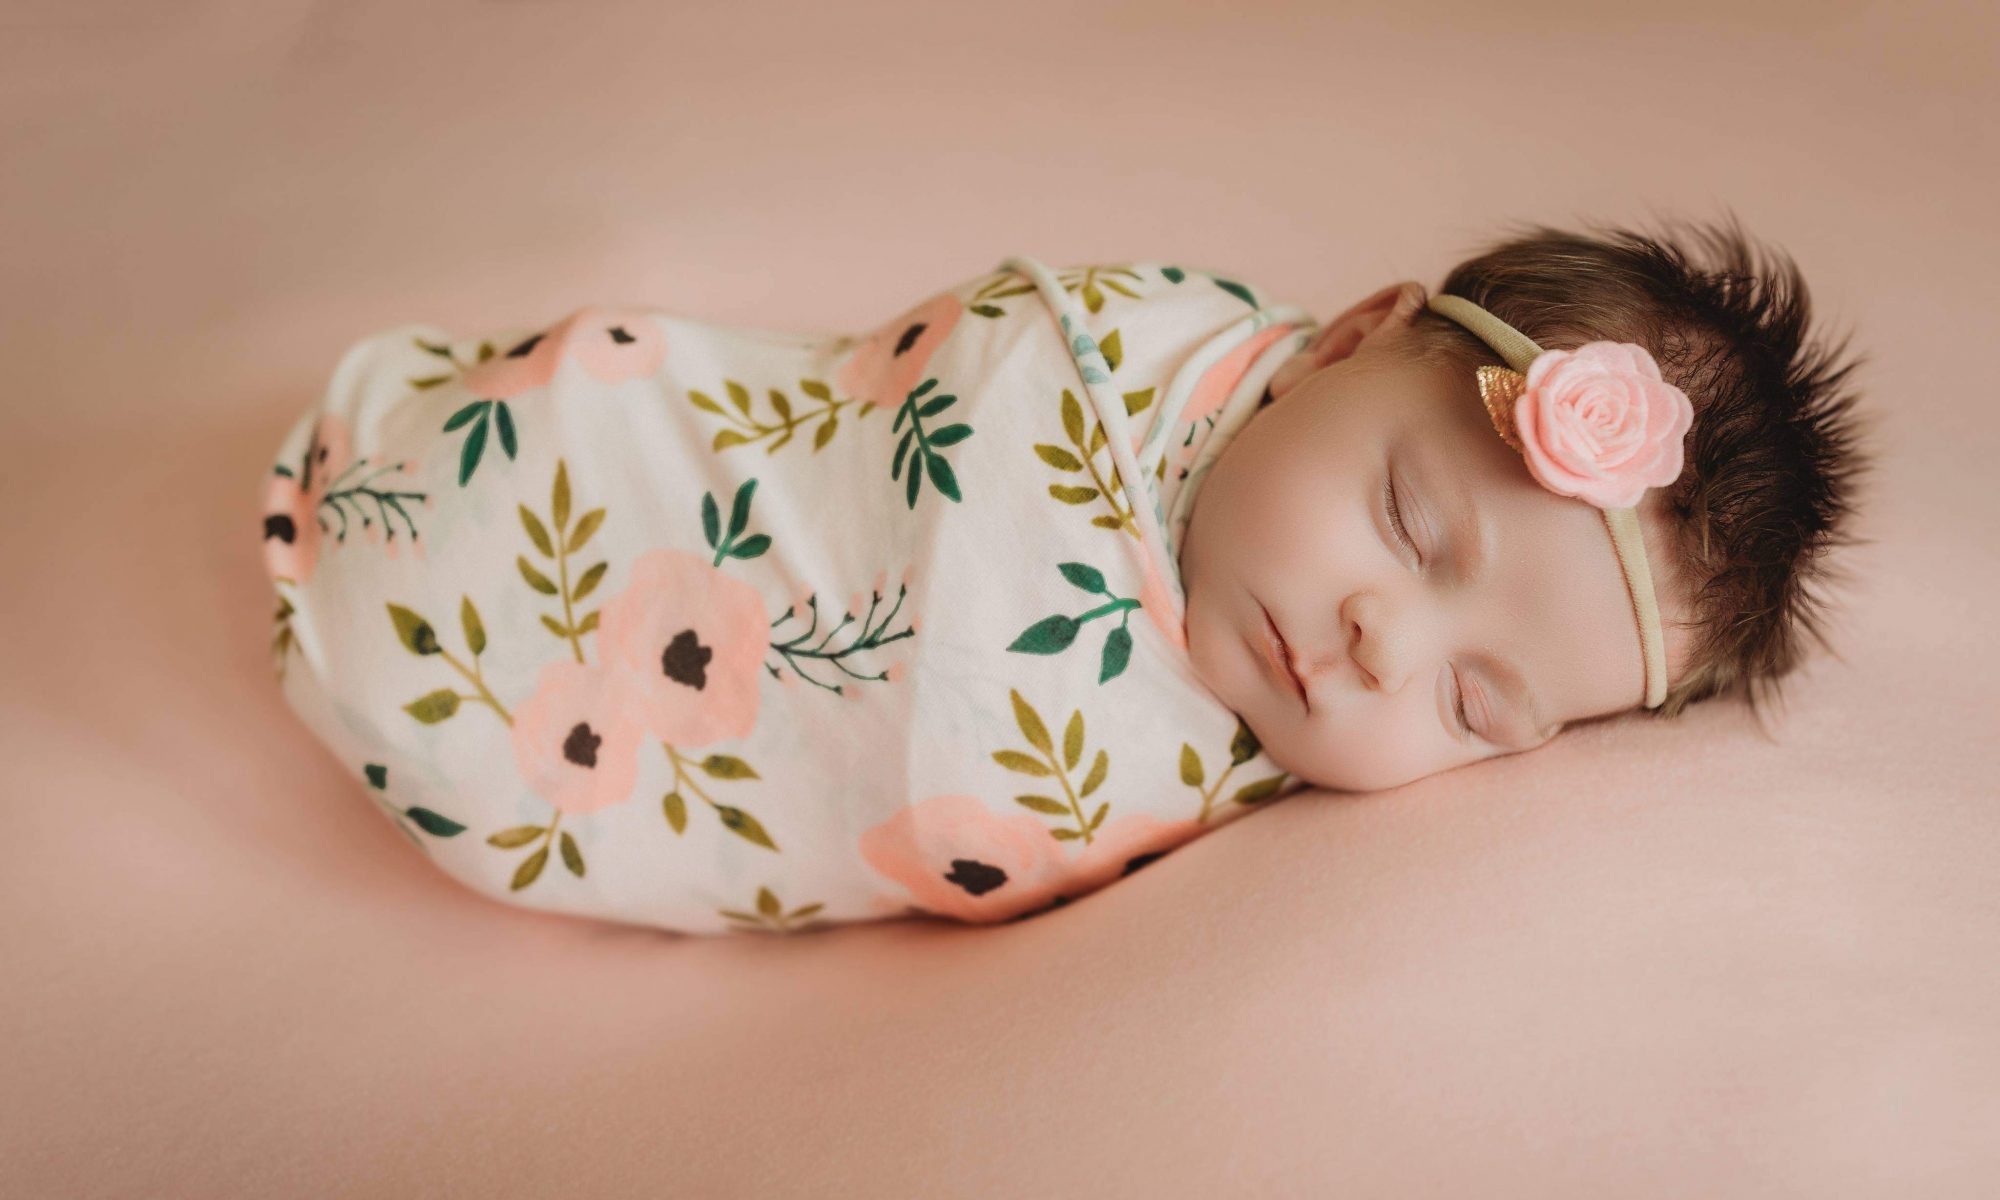 lifestyle newborn photography session with baby girl newborn posed on bed